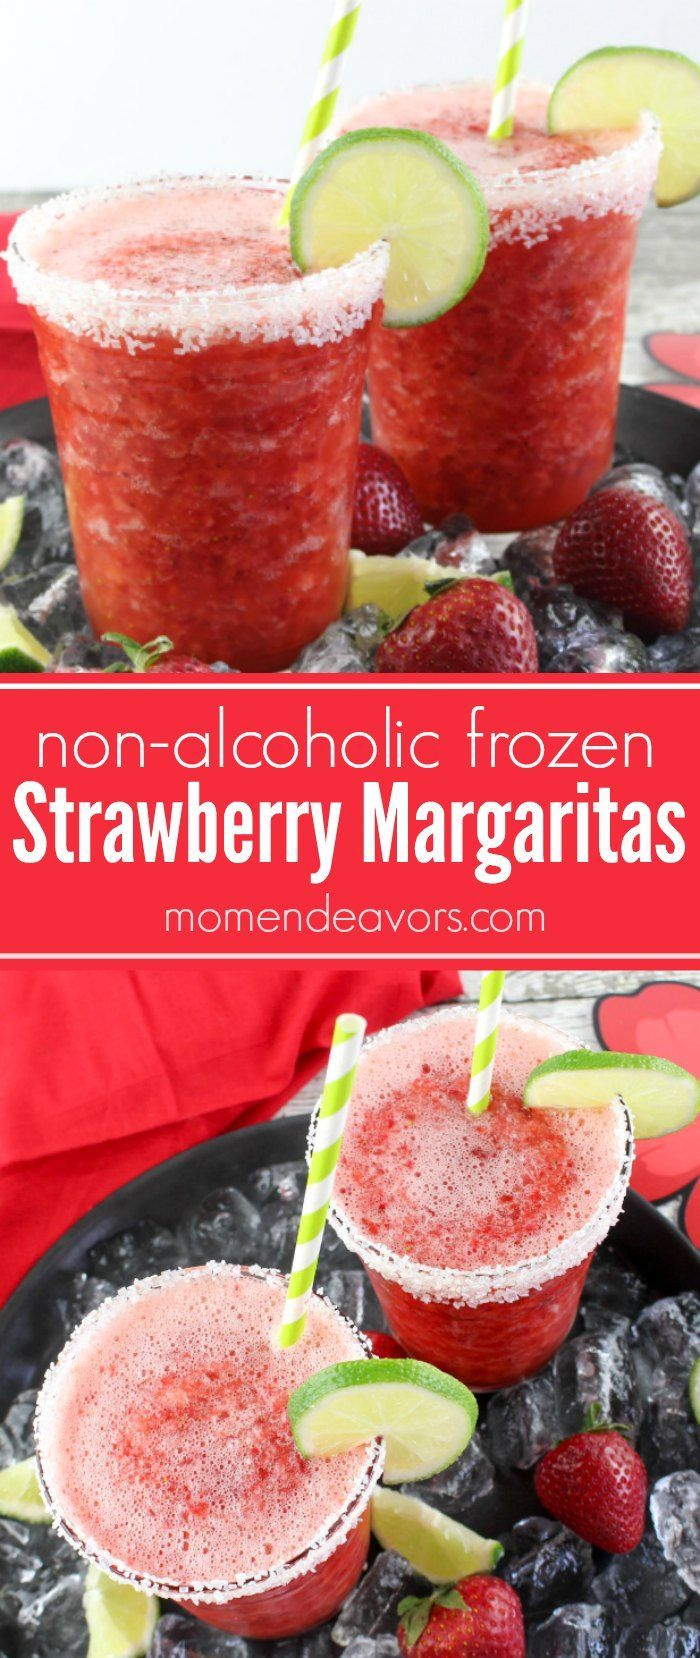 Non-Alcoholic Frozen Strawberry Margaritas - a delicious fruity mocktail recipe.